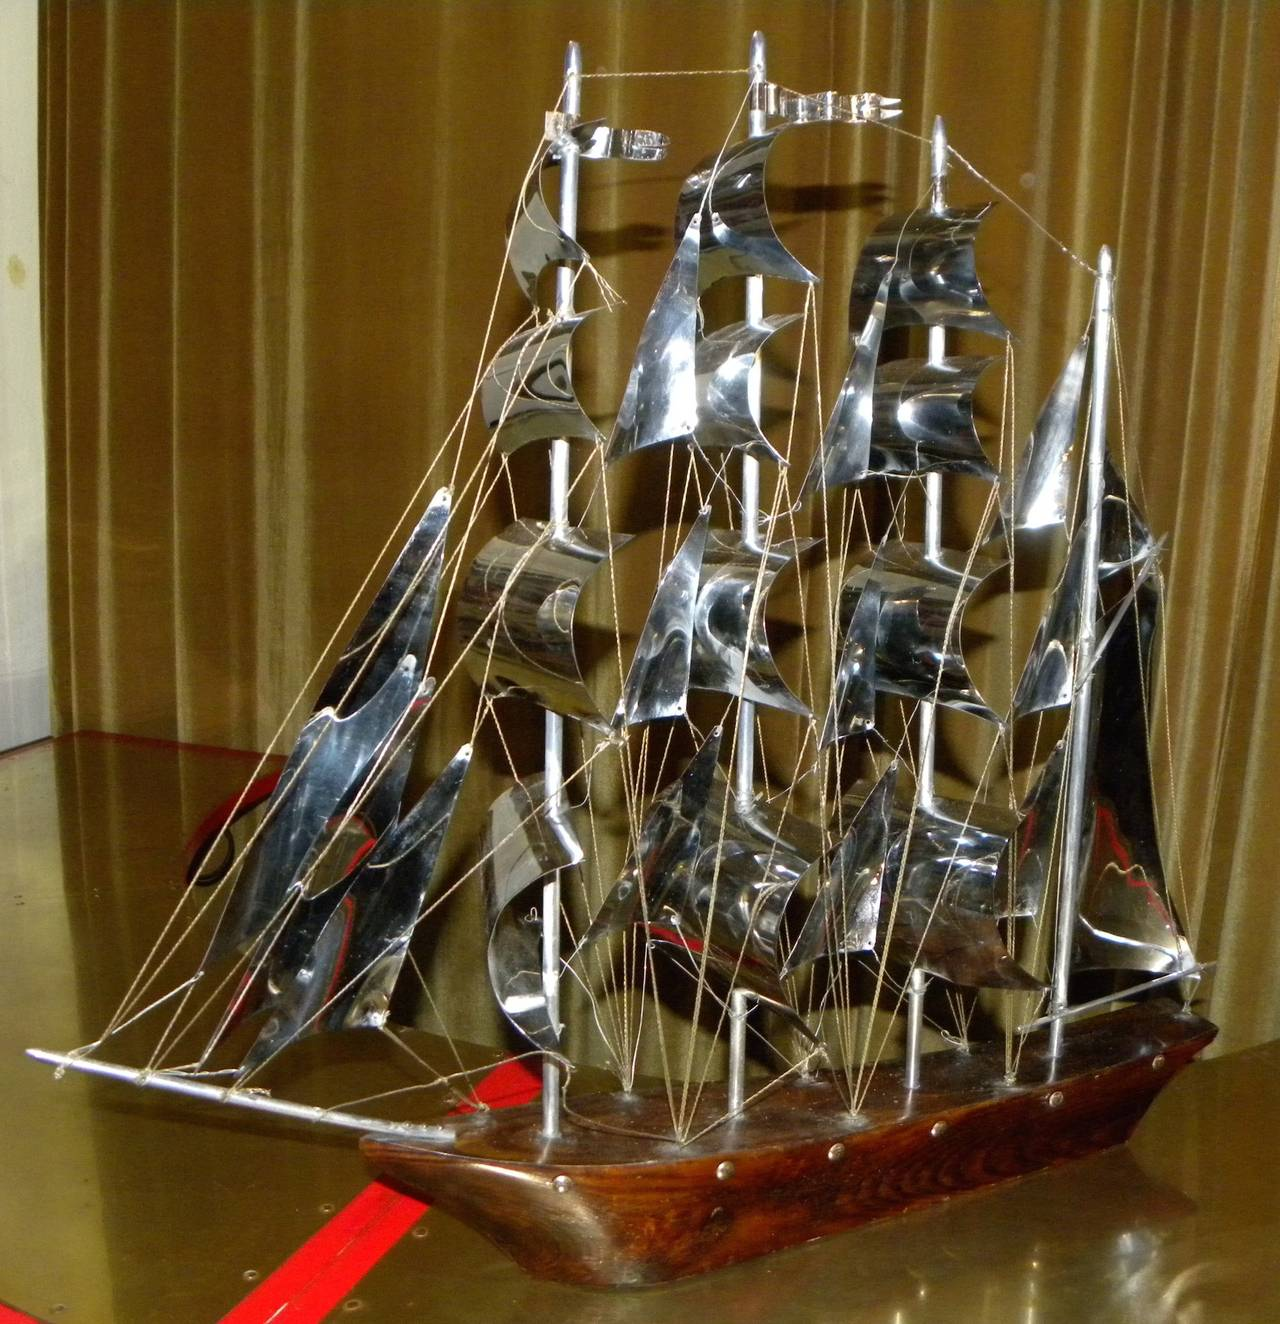 This stunning Art Deco large-scale sailboat is truly a magnificent sight. The metal is all original and in amazing condition. Solid wood base with many metal details depicting the sails, the lines and flags. This size is very large and would make